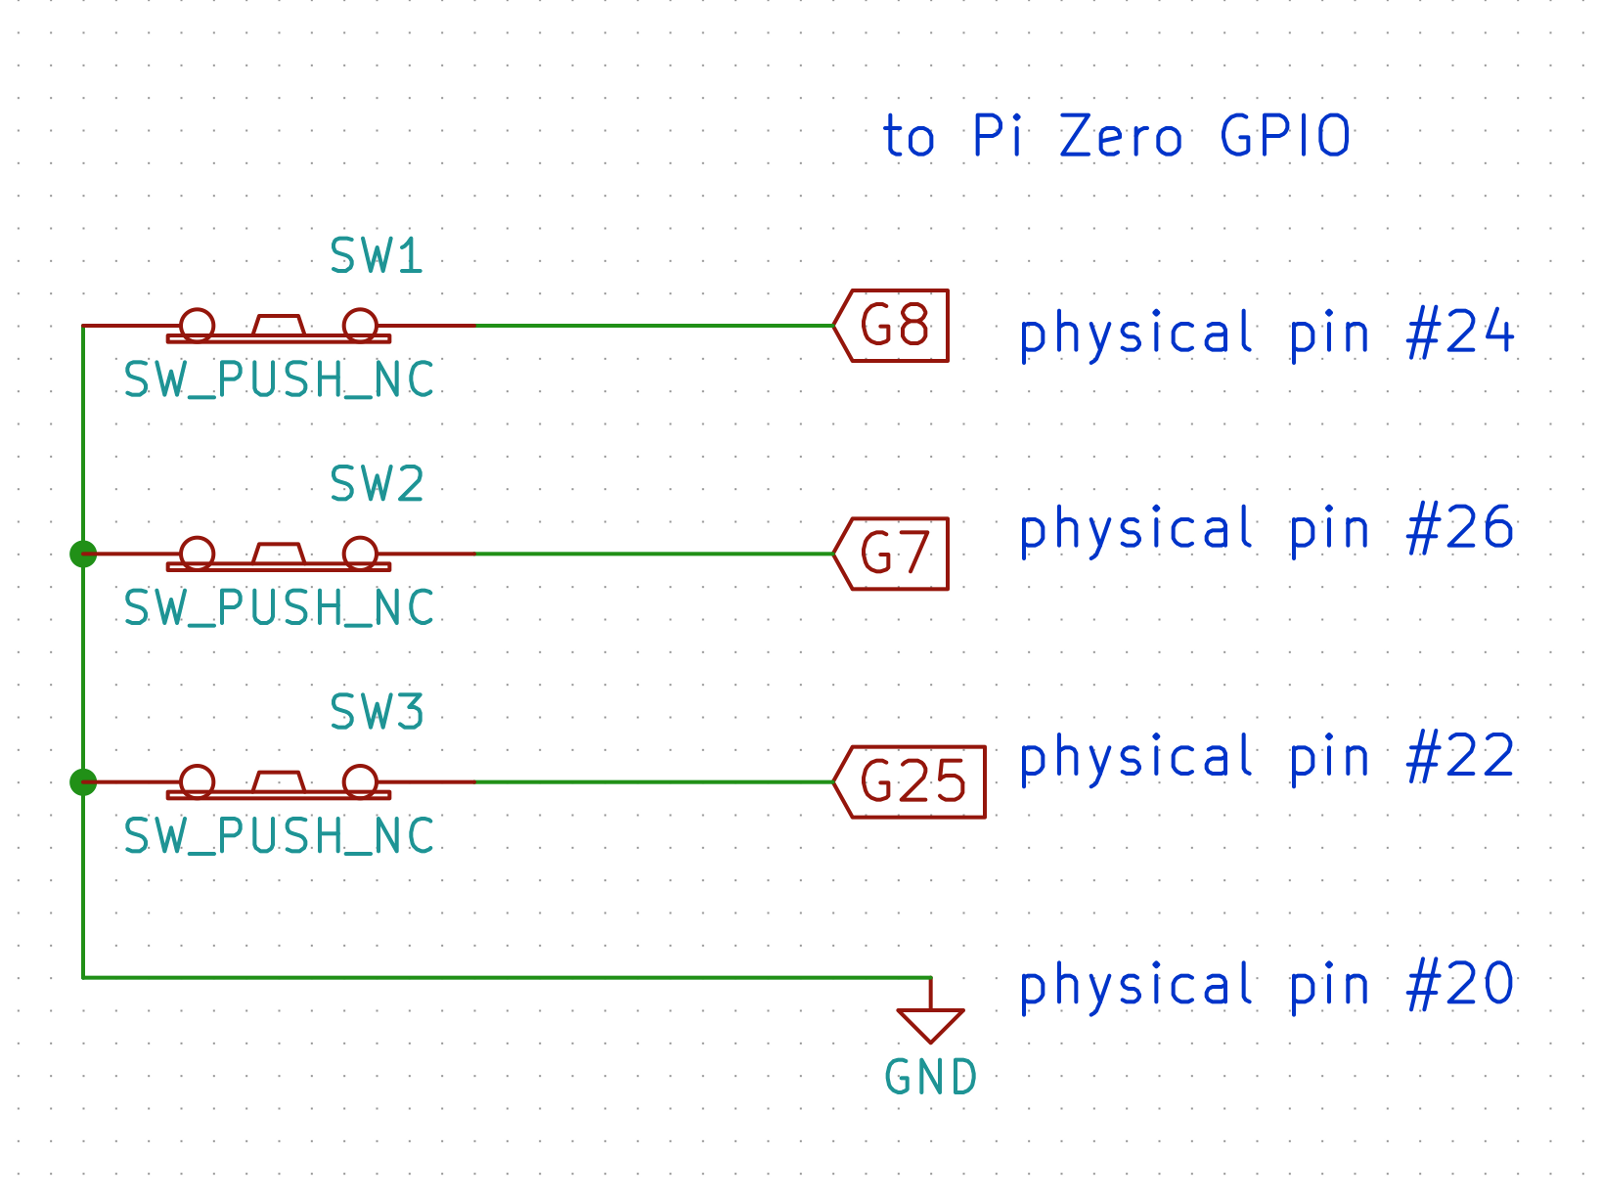 Interrupt Driven Contact Sensors With Homebridge And Raspberry Pi Gpio Debouncing Circuit In Switch Open Closed States The Switches Will Drive Low When Normally Not Pressed Float Opened Momentarily To Ensure A Logic Level 1 Is Read